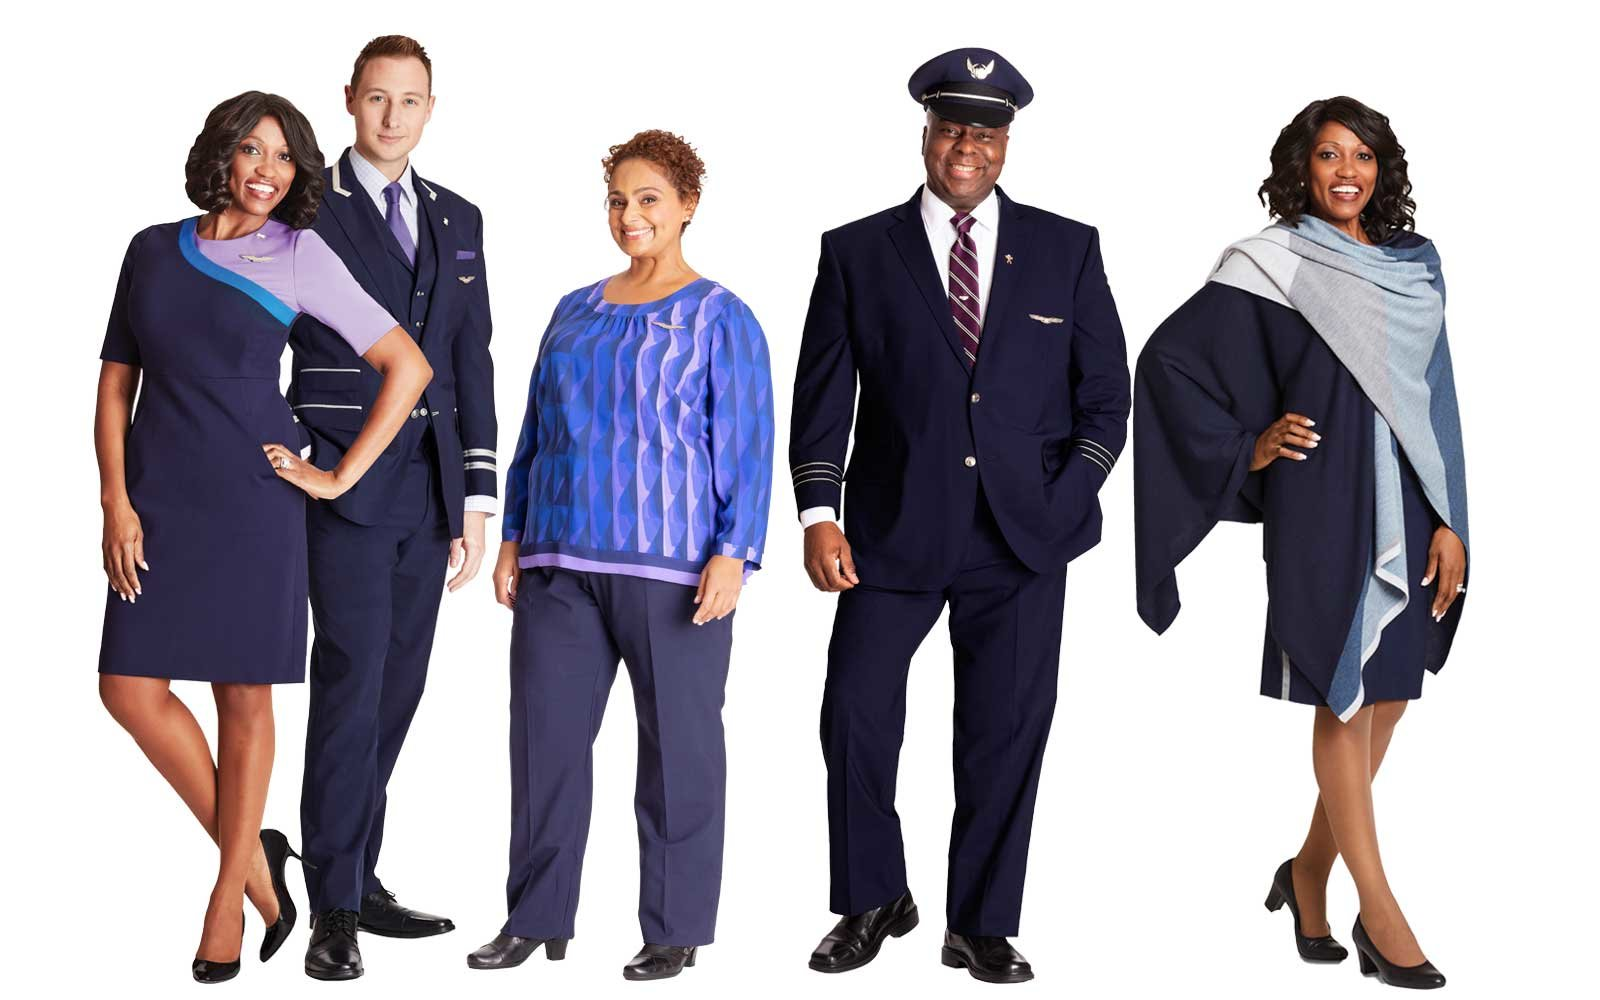 There's a Reason Airlines Are Dressing Their Employees in Purple